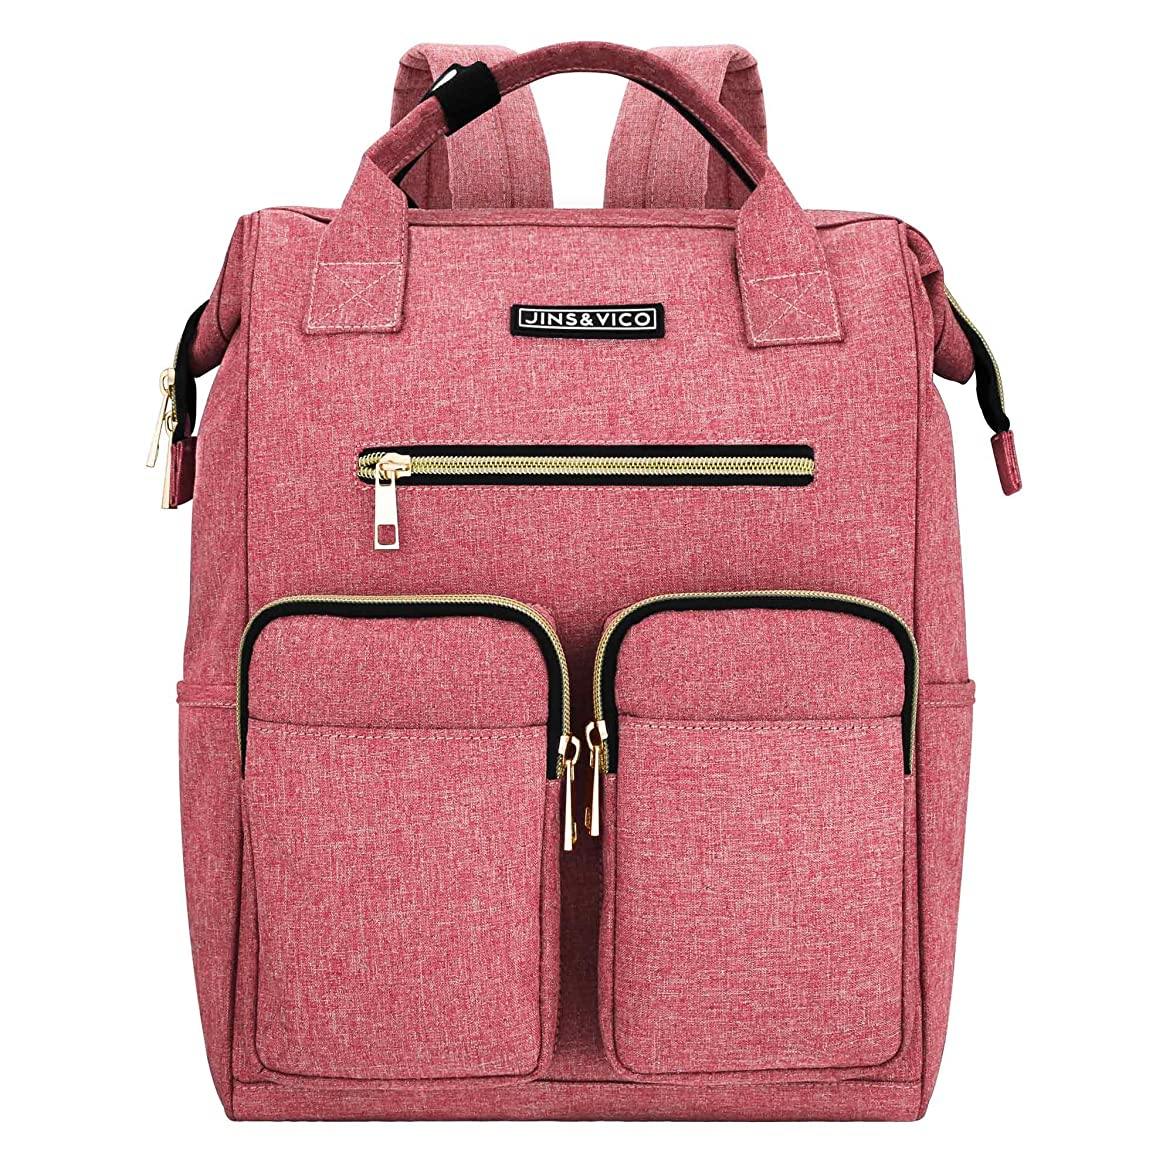 Laptop Backpack for Women, Lightweight Womens Travel Backpack Wide Open Backpack Large Capacity for Girls Travel School Multipurpose Use Daily Carry Backpack (Pink)